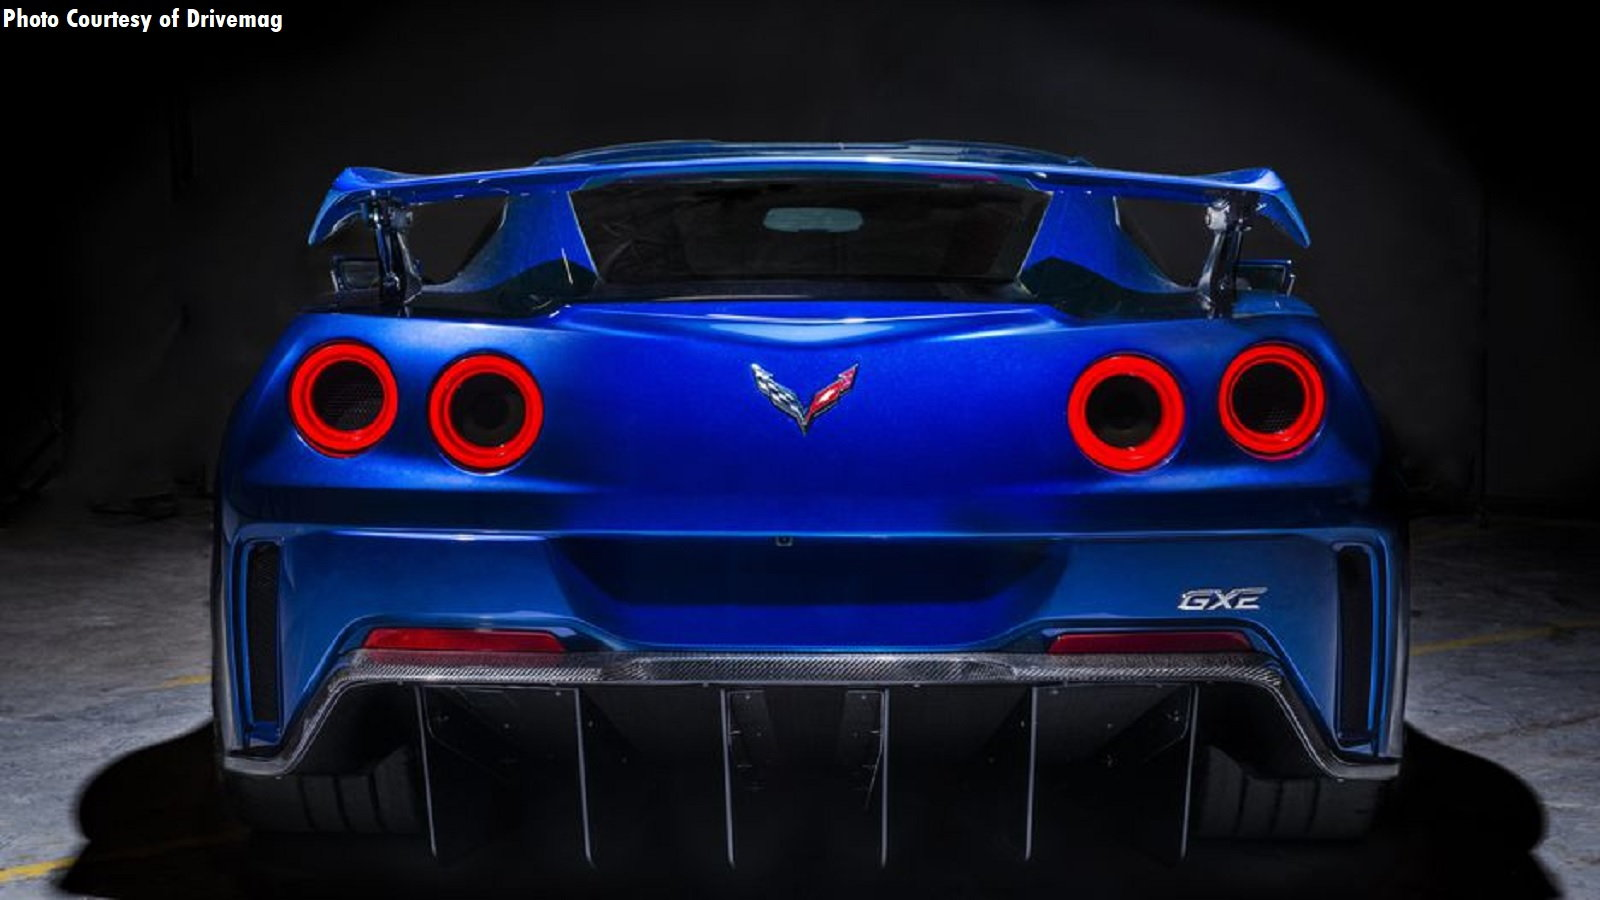 The GXE is an 800HP Electric Corvette